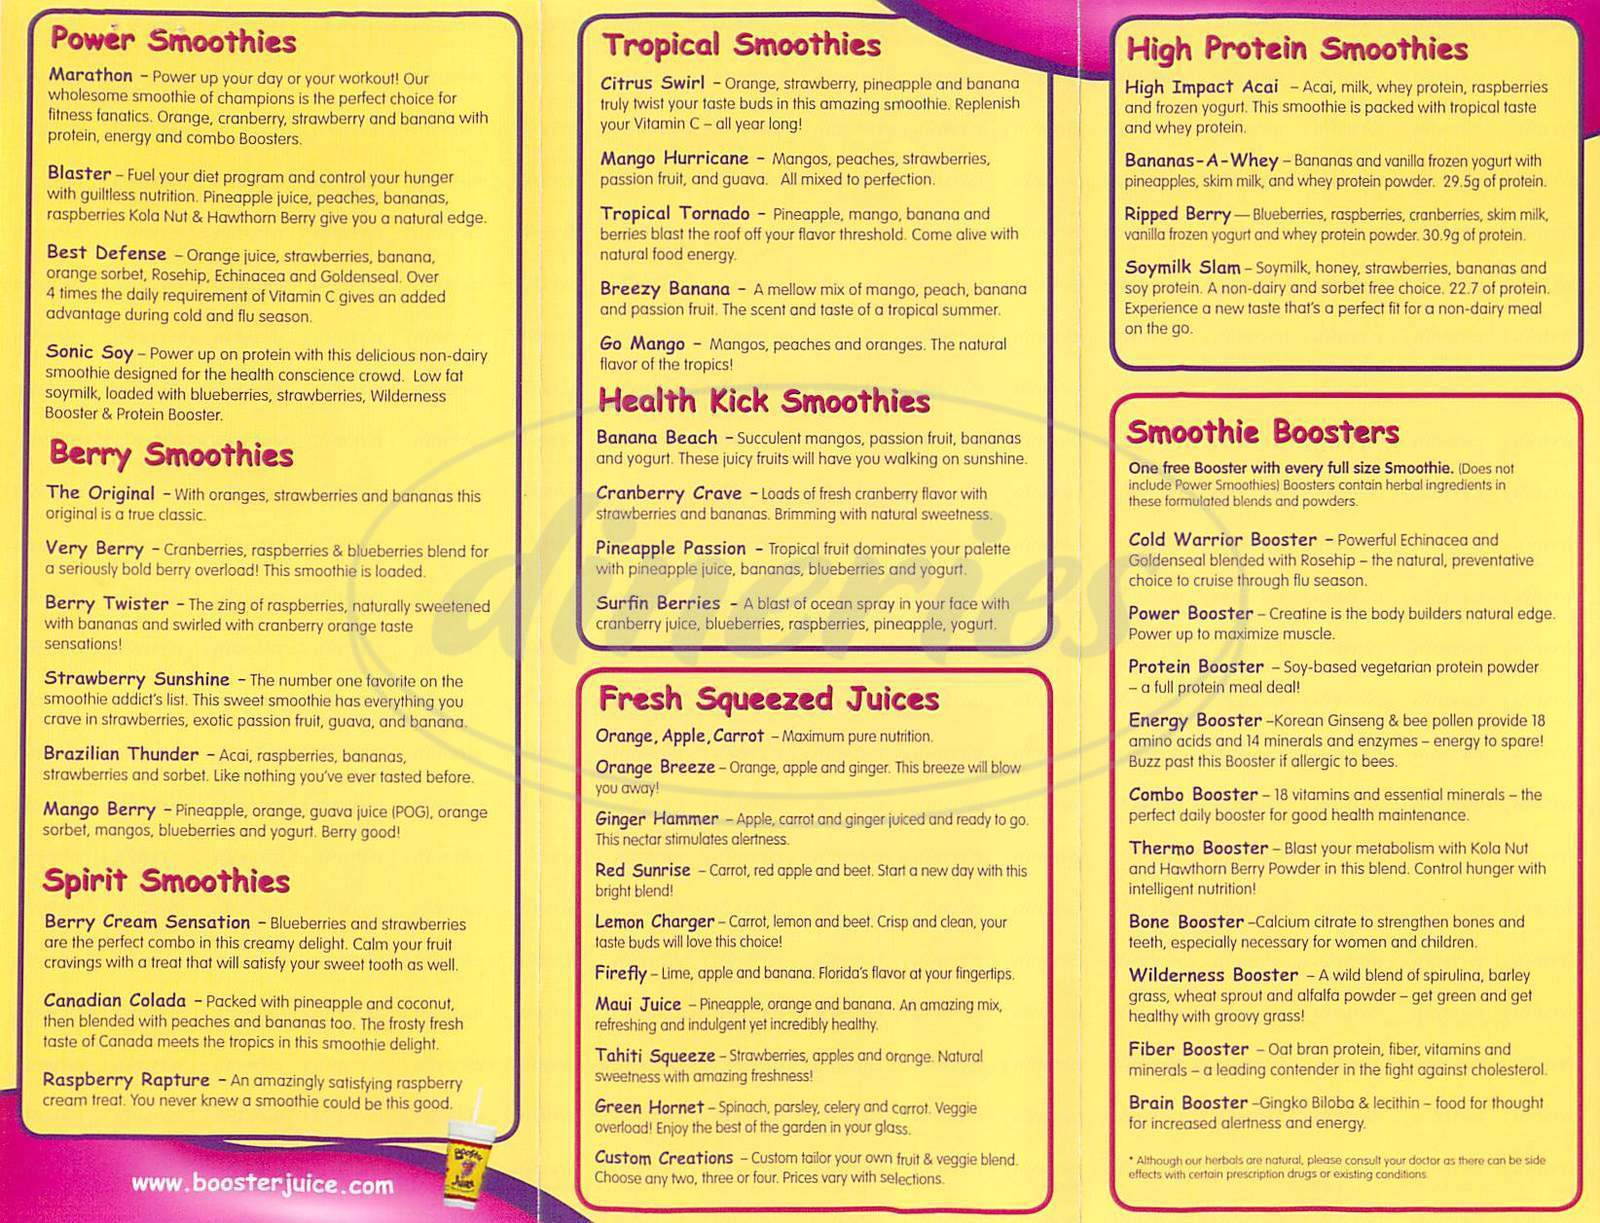 menu for Booster Juice